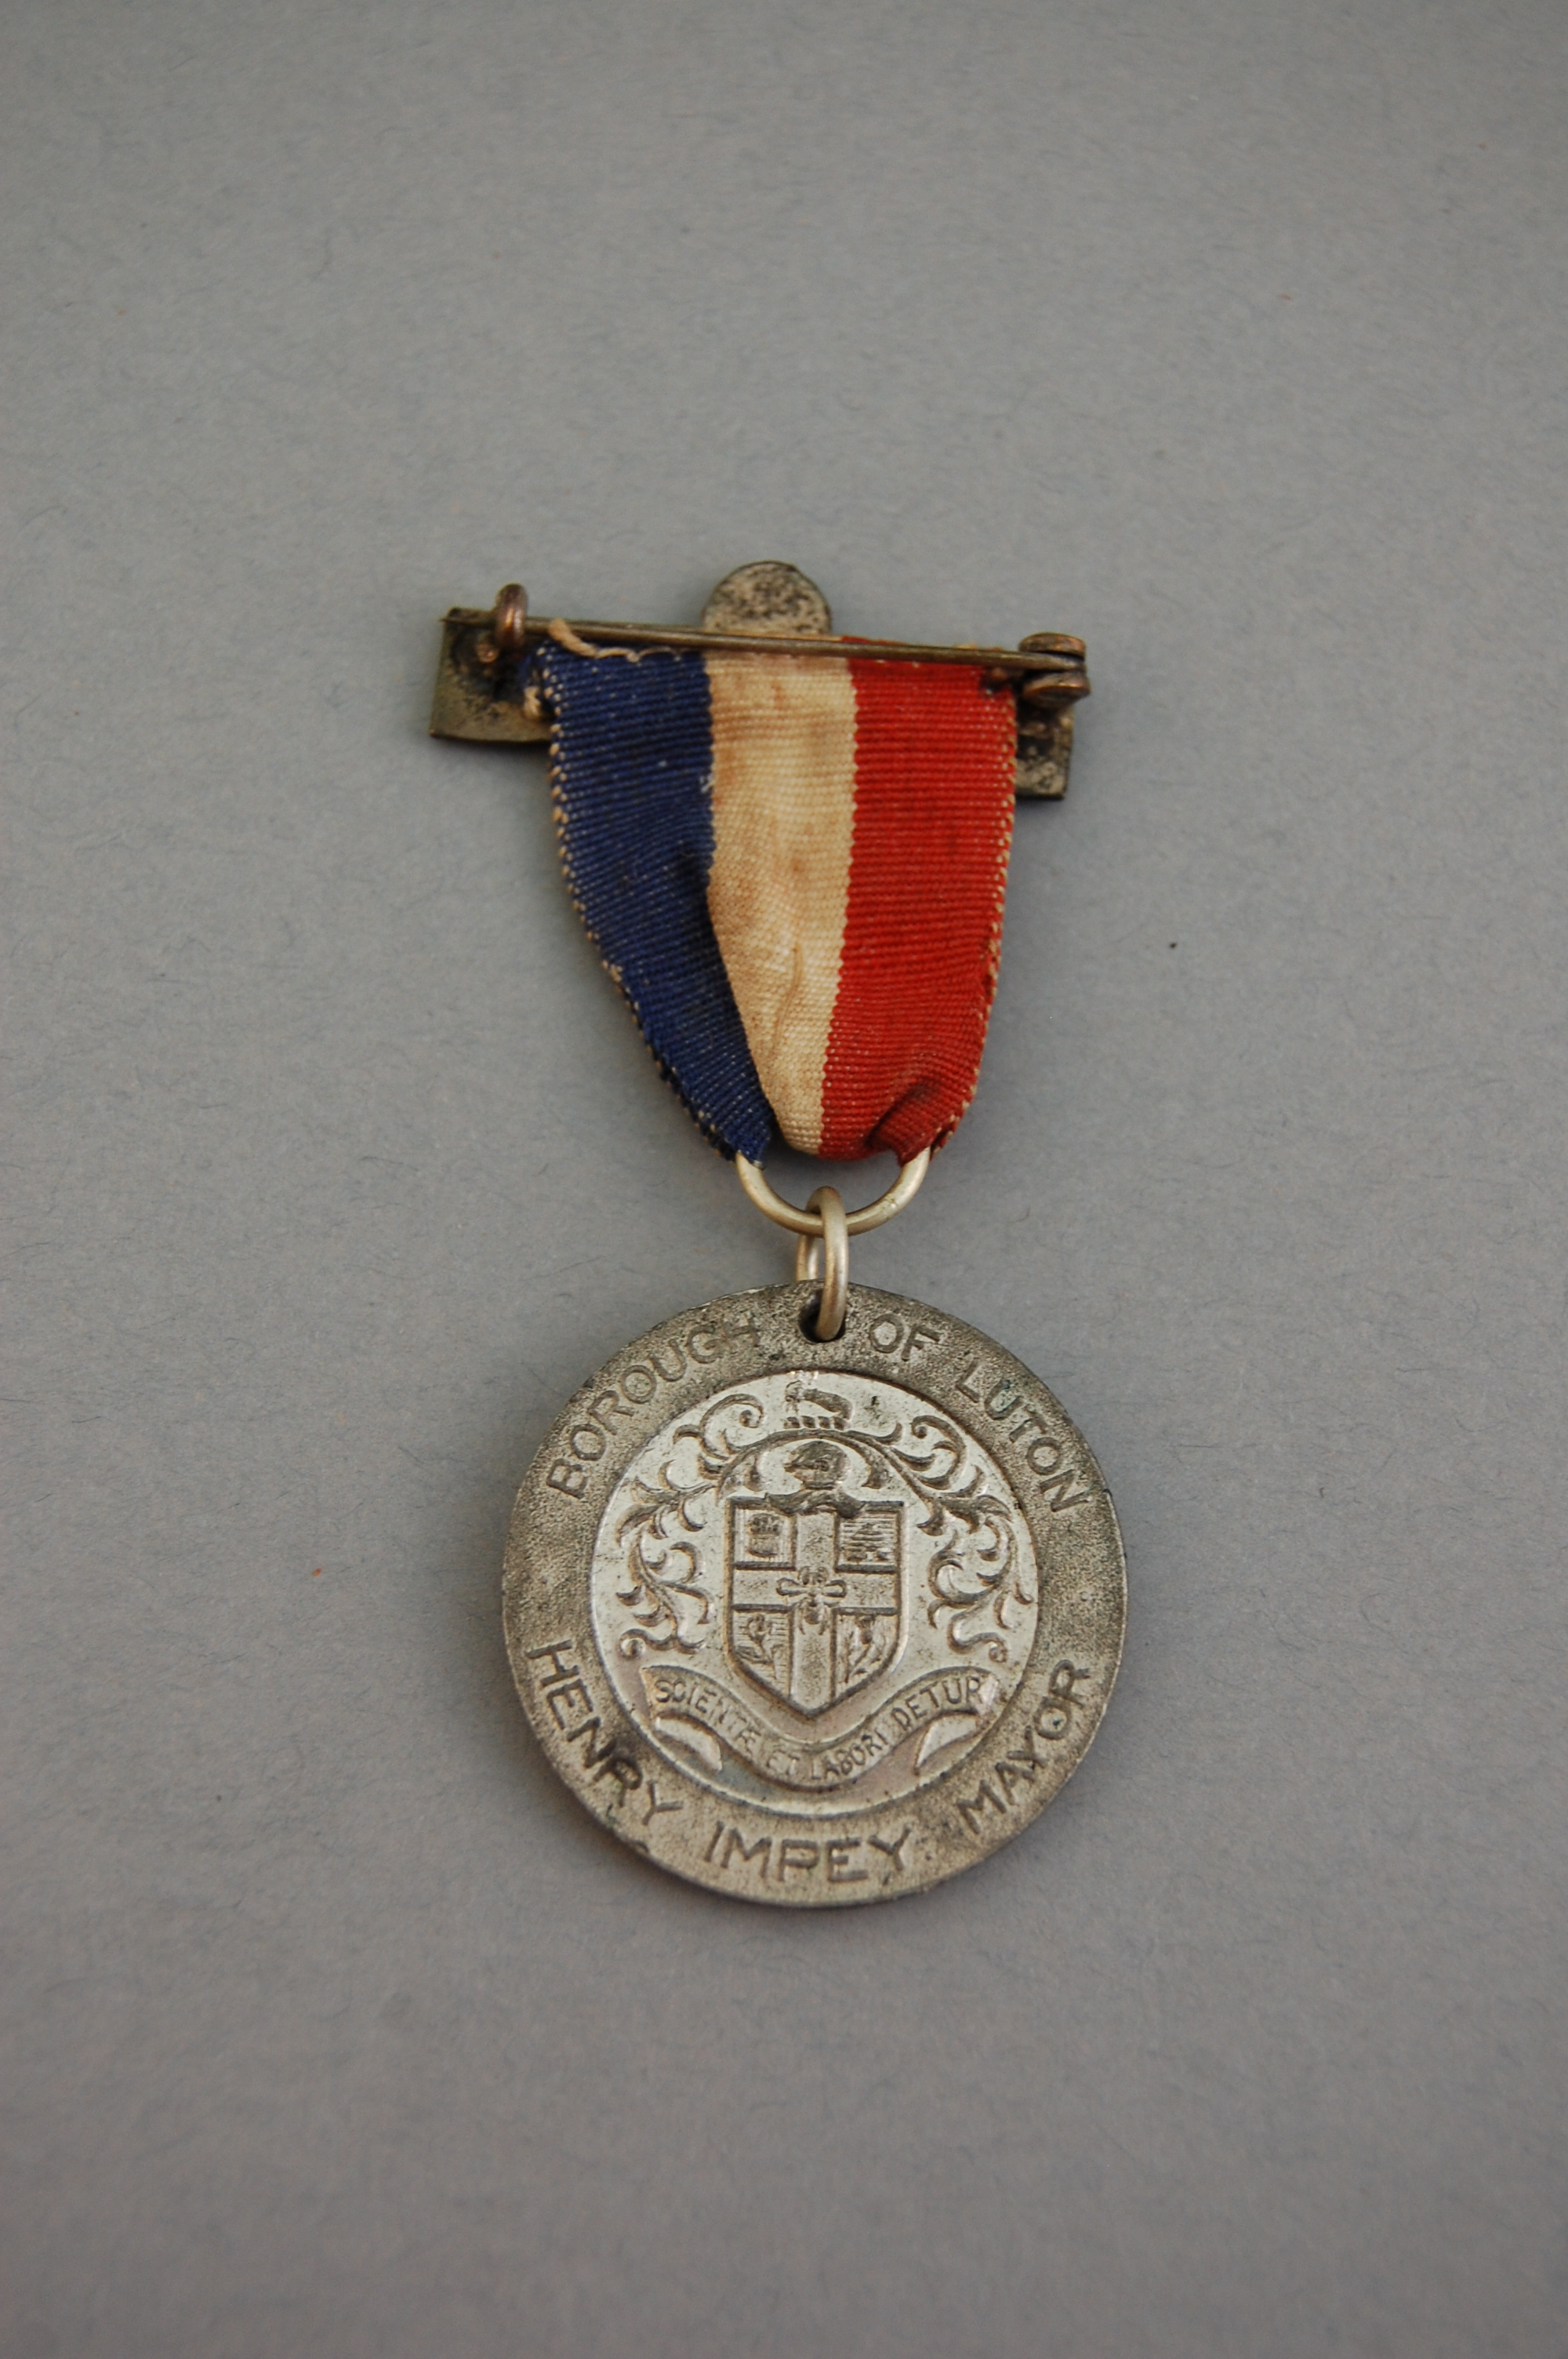 This medal was issued at the end of the war to Luton men who had served in the armed forces.